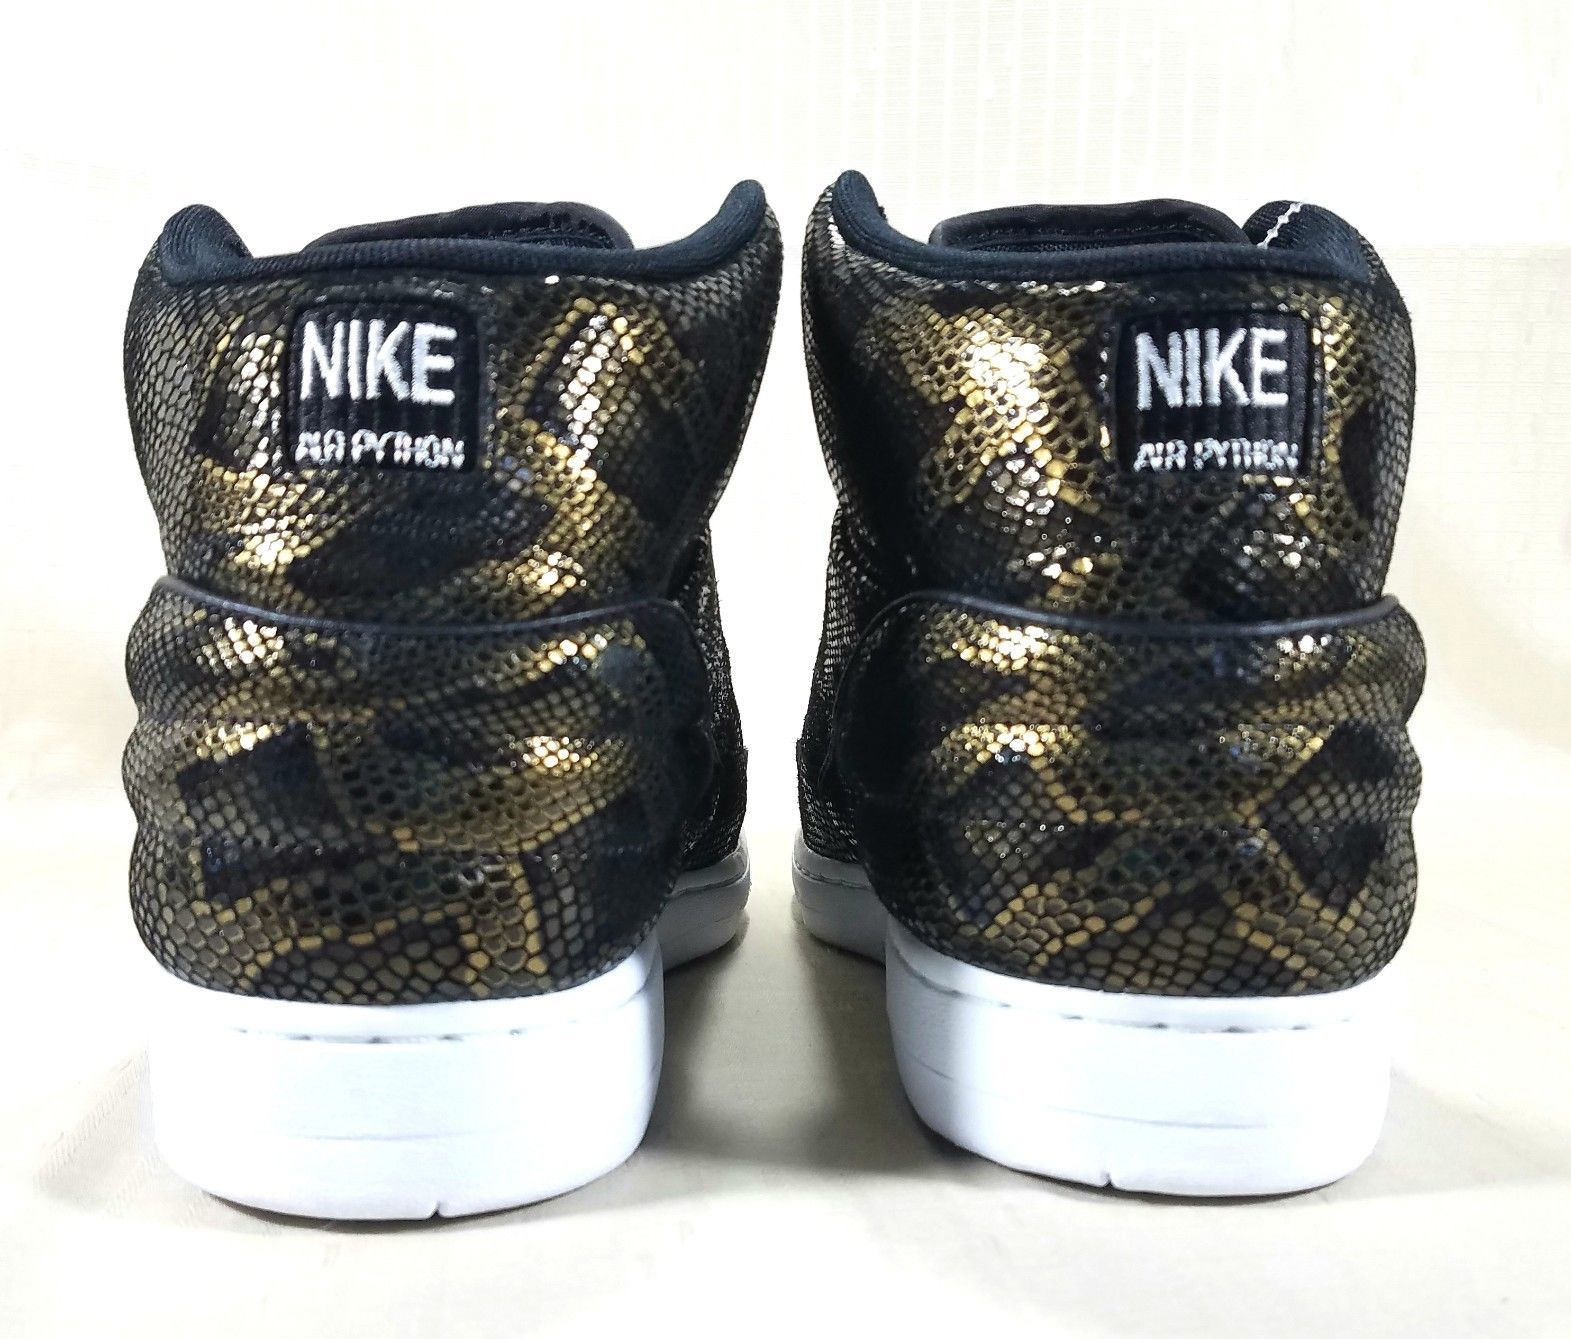 new concept 592af 1bdd0 Nike Air Python Premium Sneakers Men s Size 9 Black   Metallic Gold  705066-002